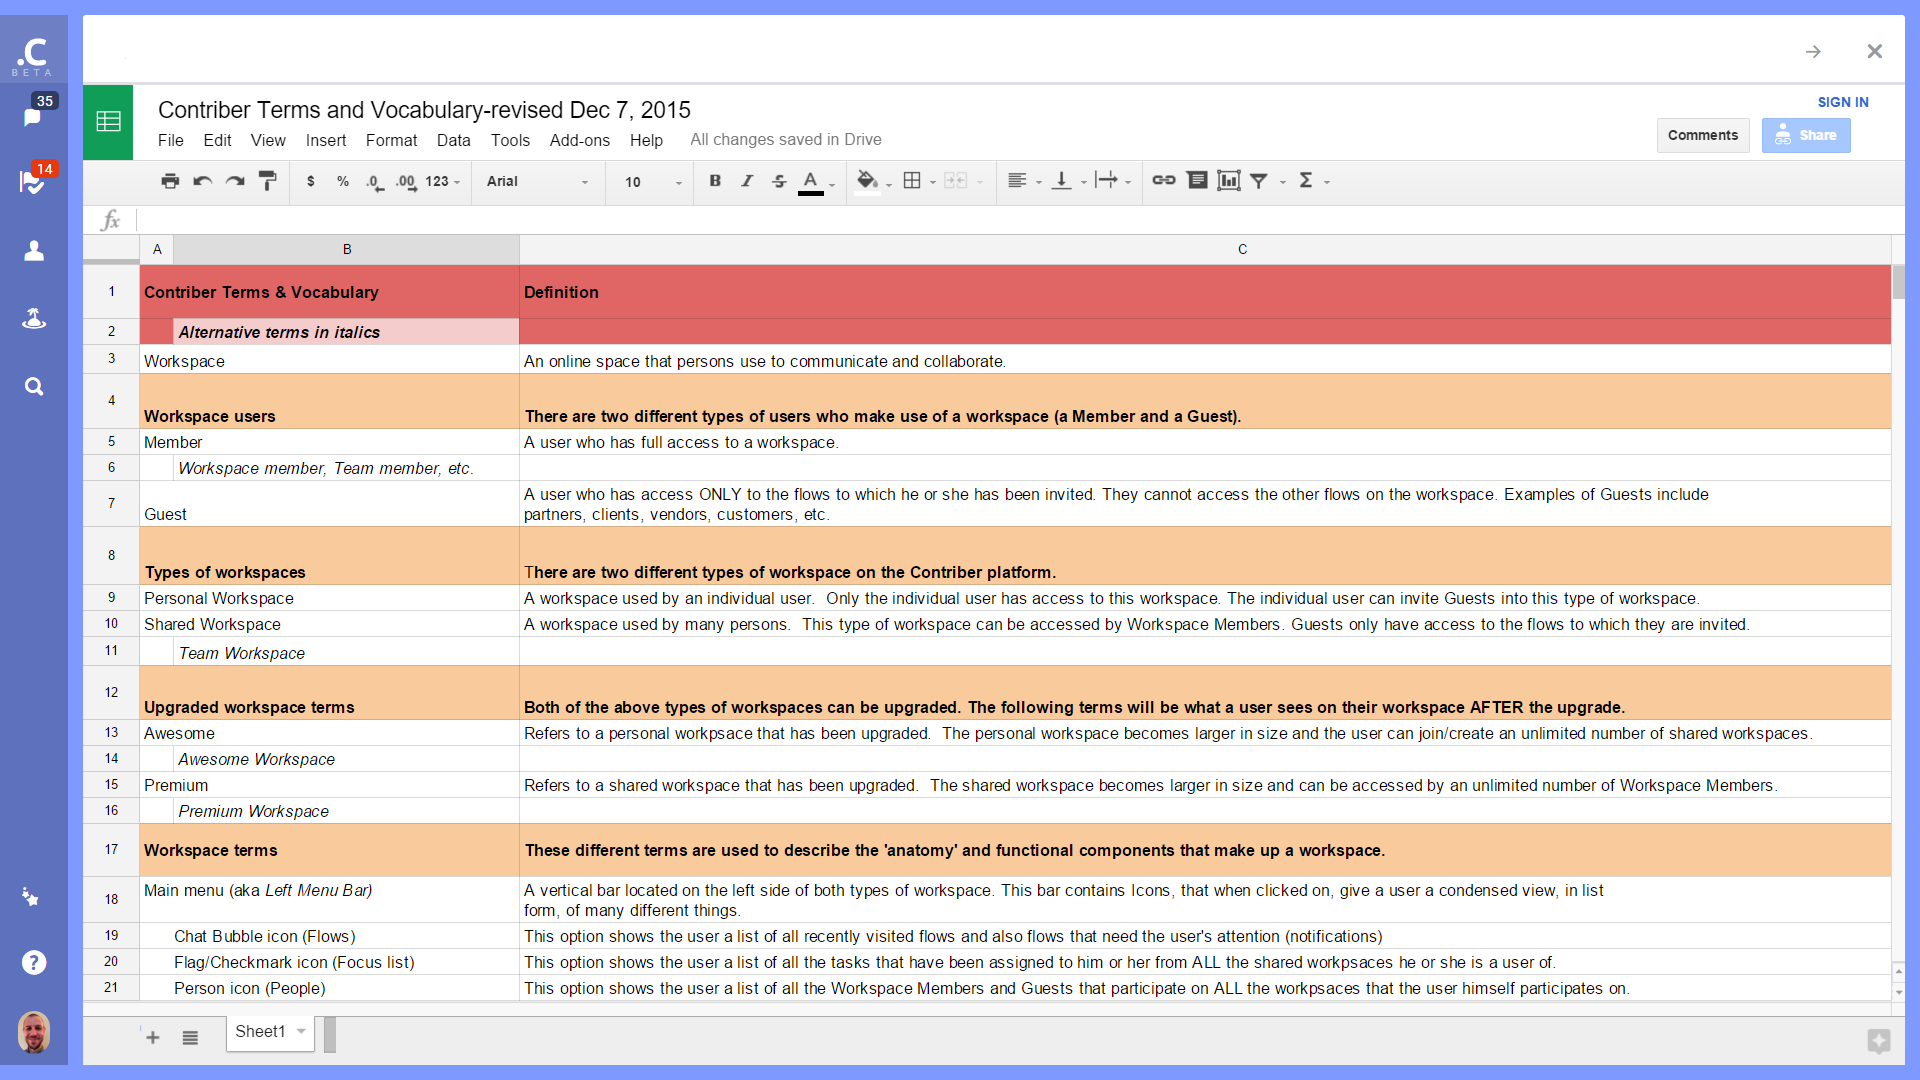 how to link two spreadsheets in google docs